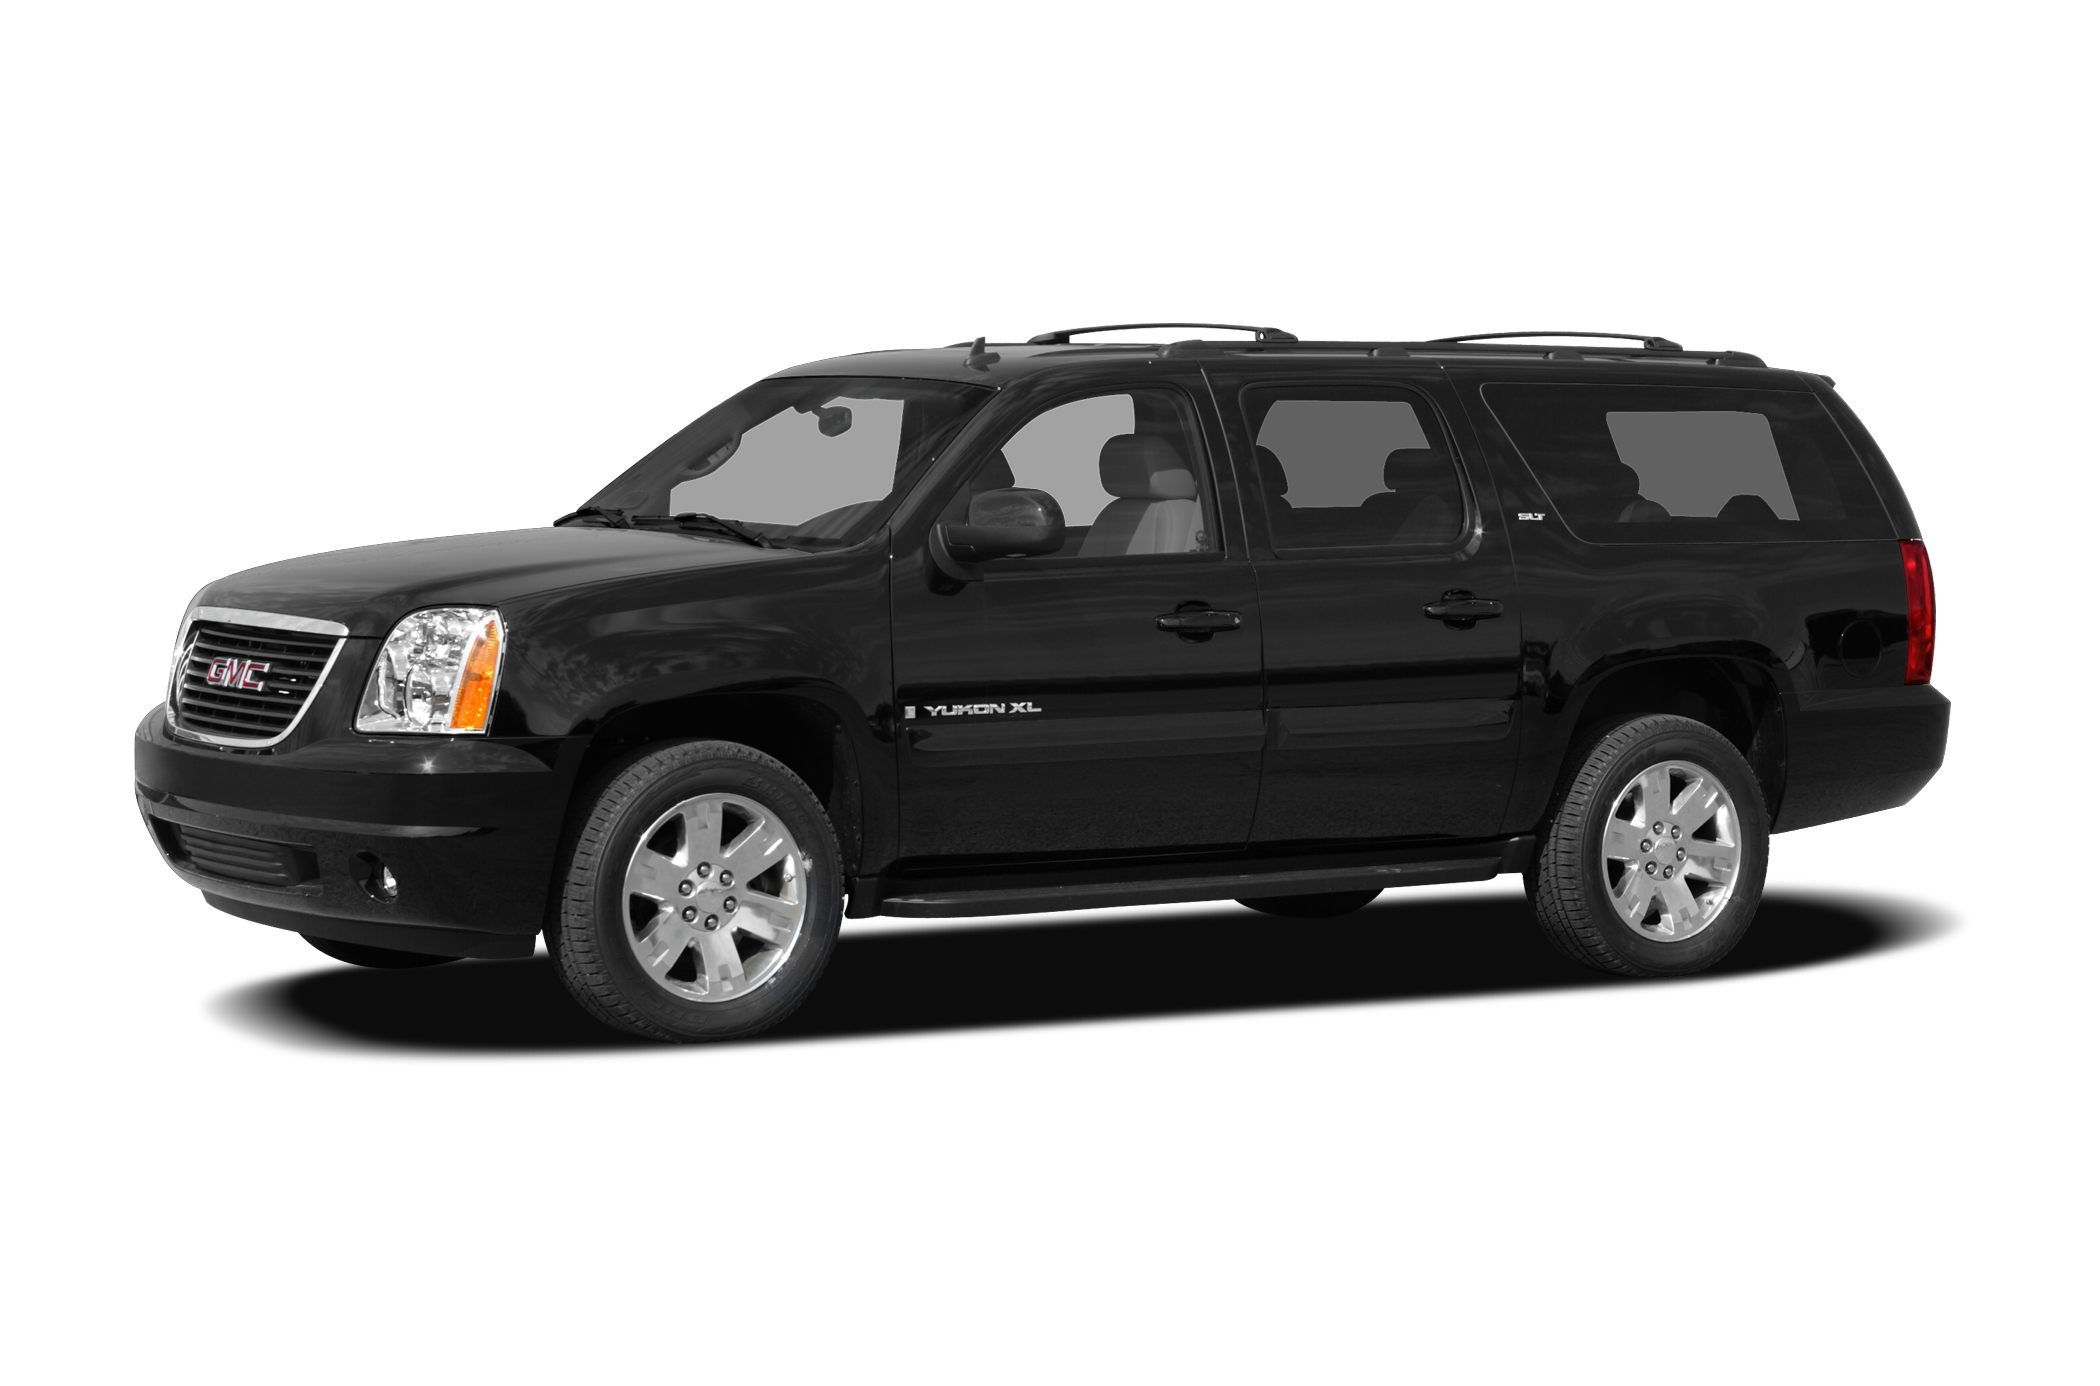 2010 GMC Yukon XL 1500 SLT SUV for sale in Bonita Springs for $23,995 with 96,060 miles